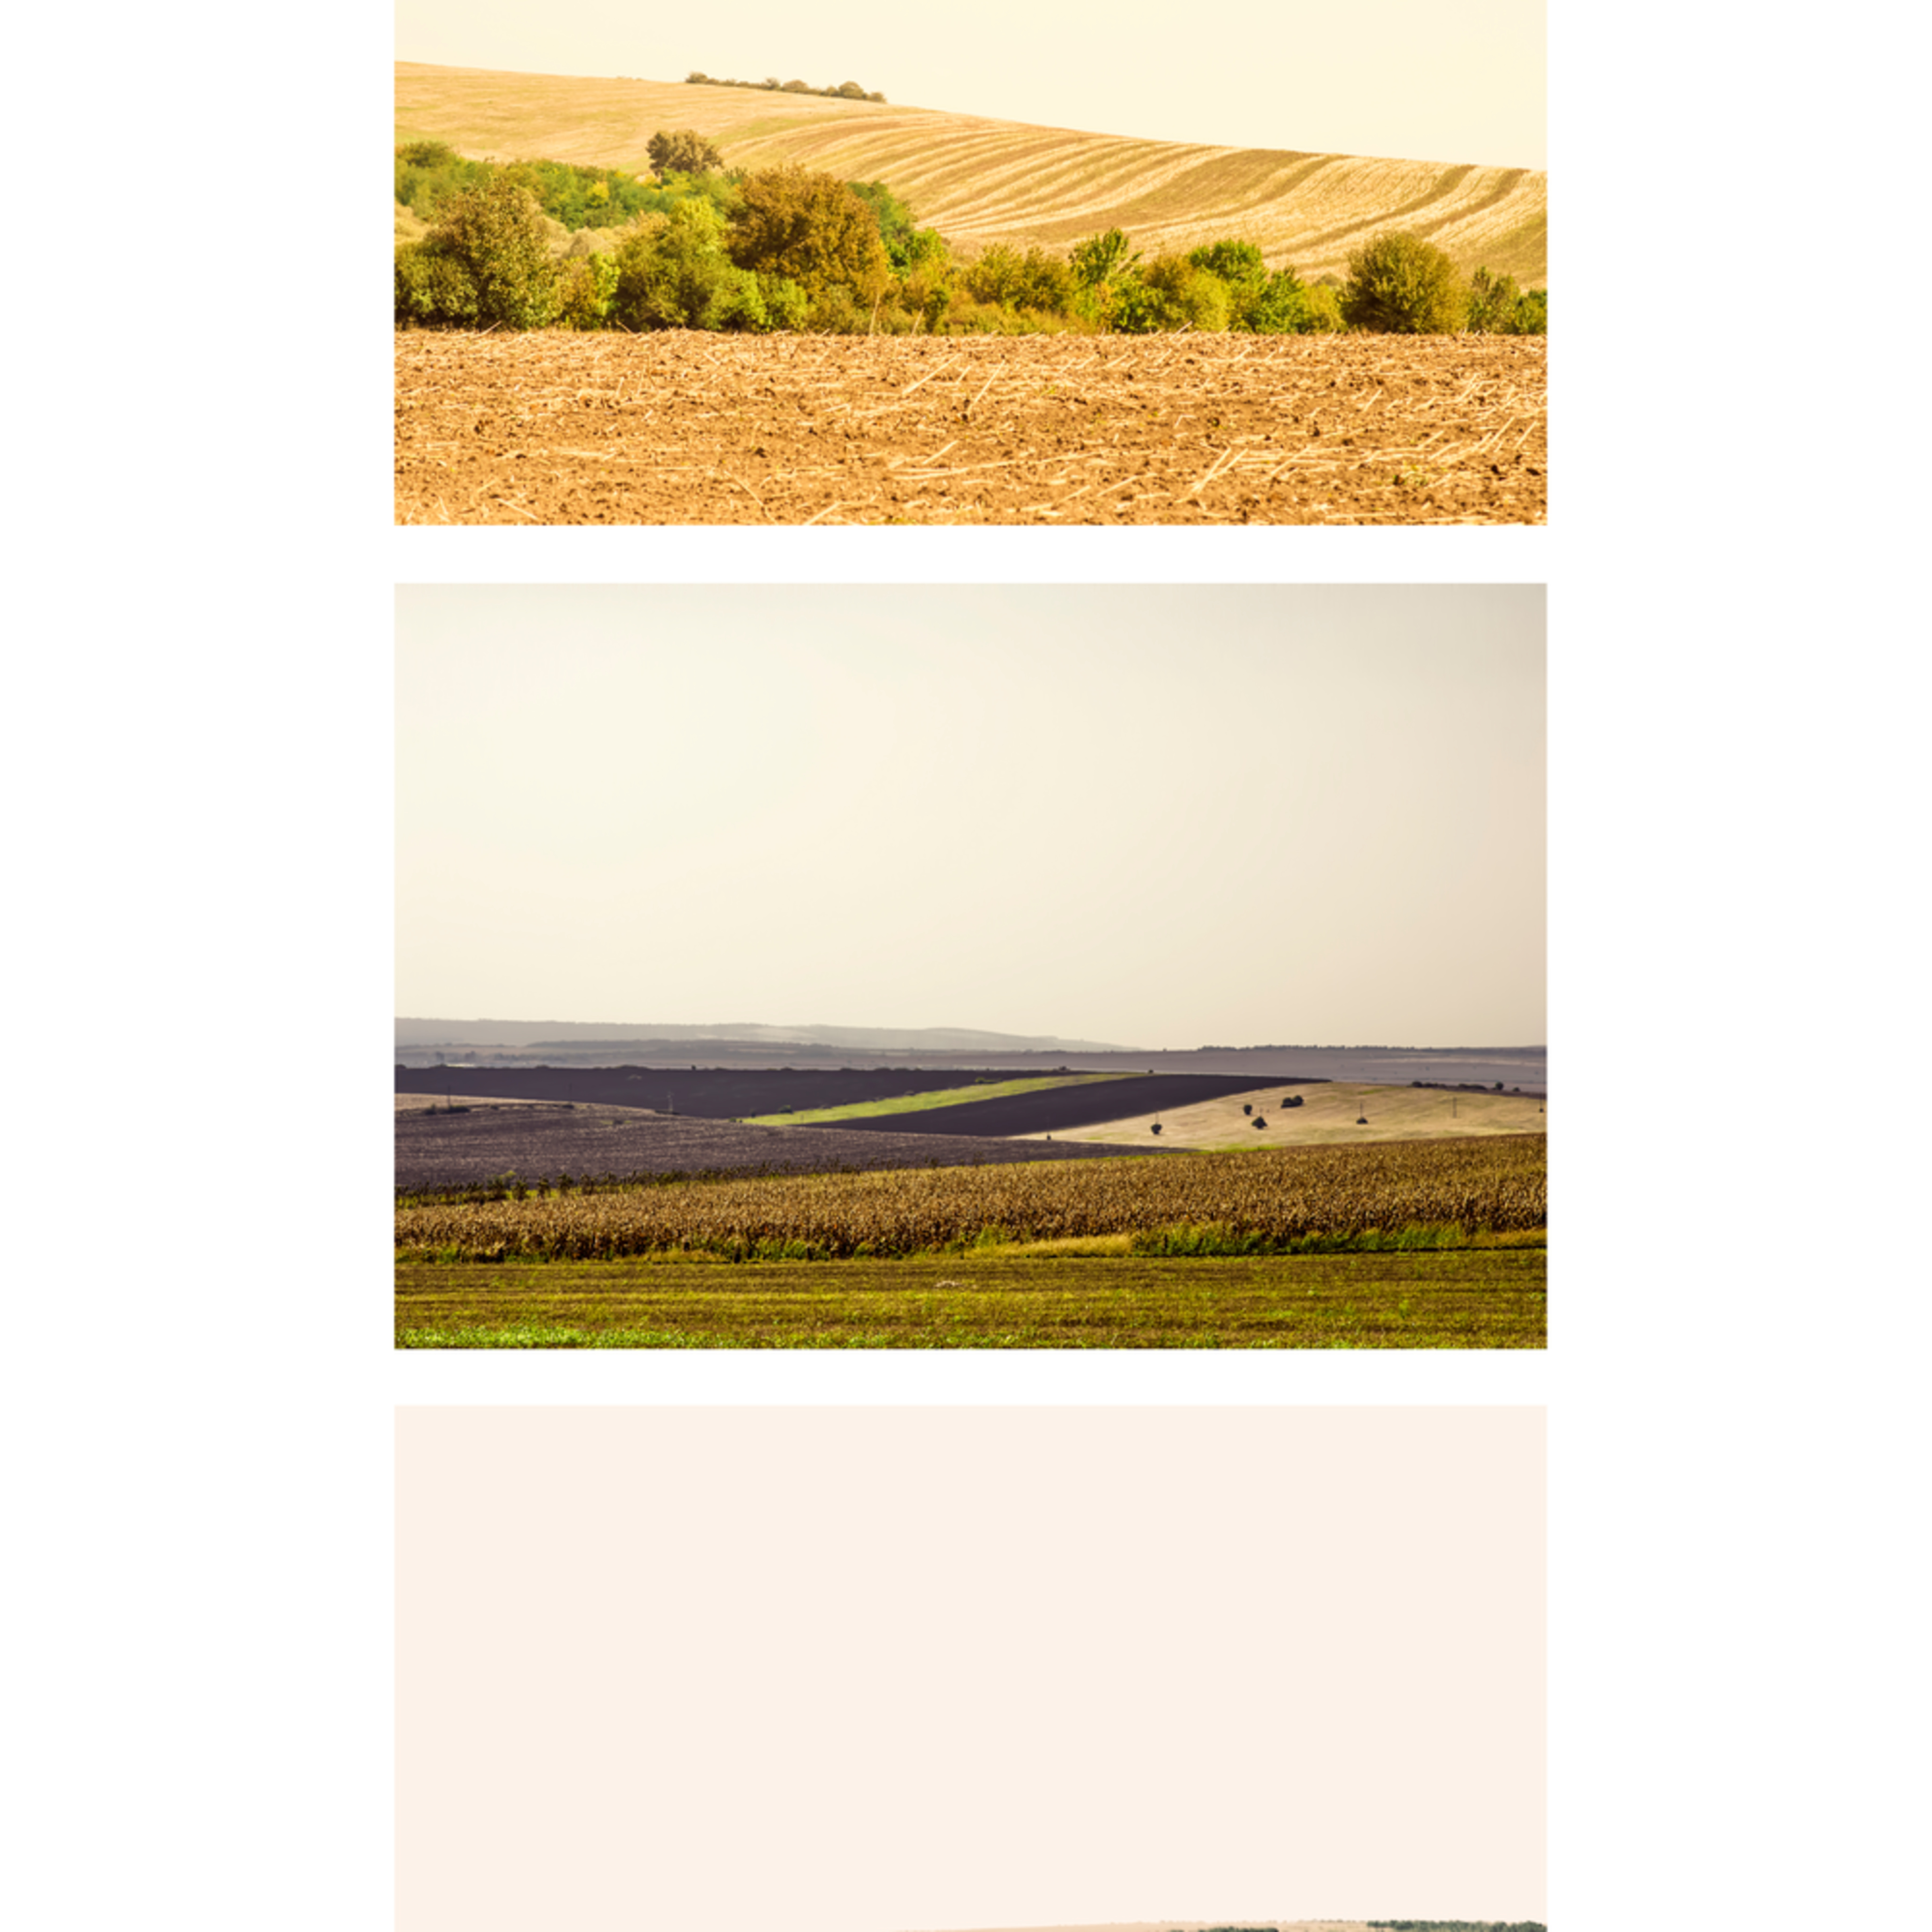 Landscapes ii collage abstract landscape photography fine art print silvia nikolov ceoyxc